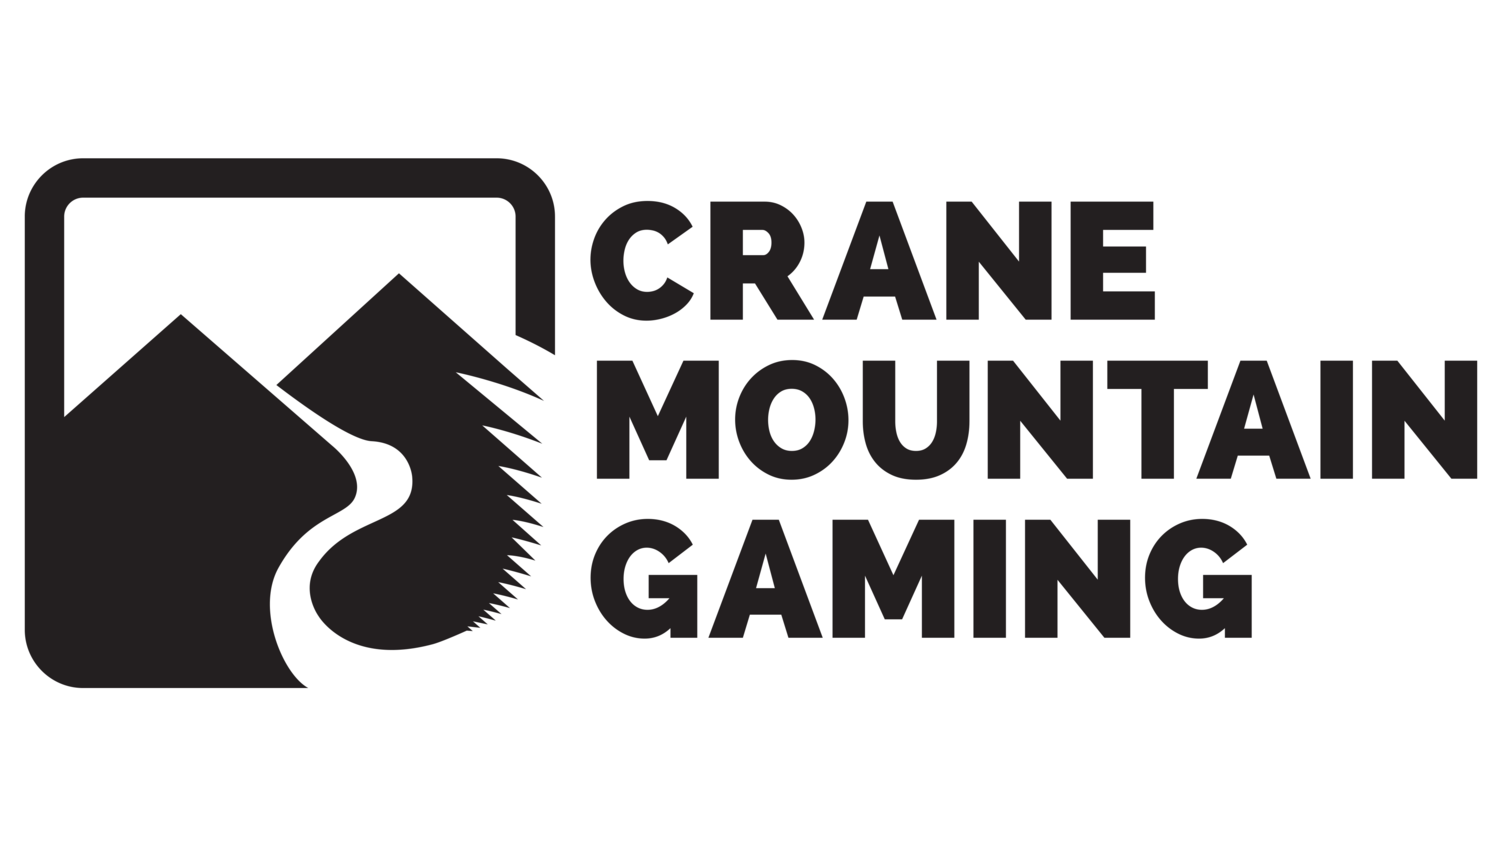 Crane Mountain Gaming